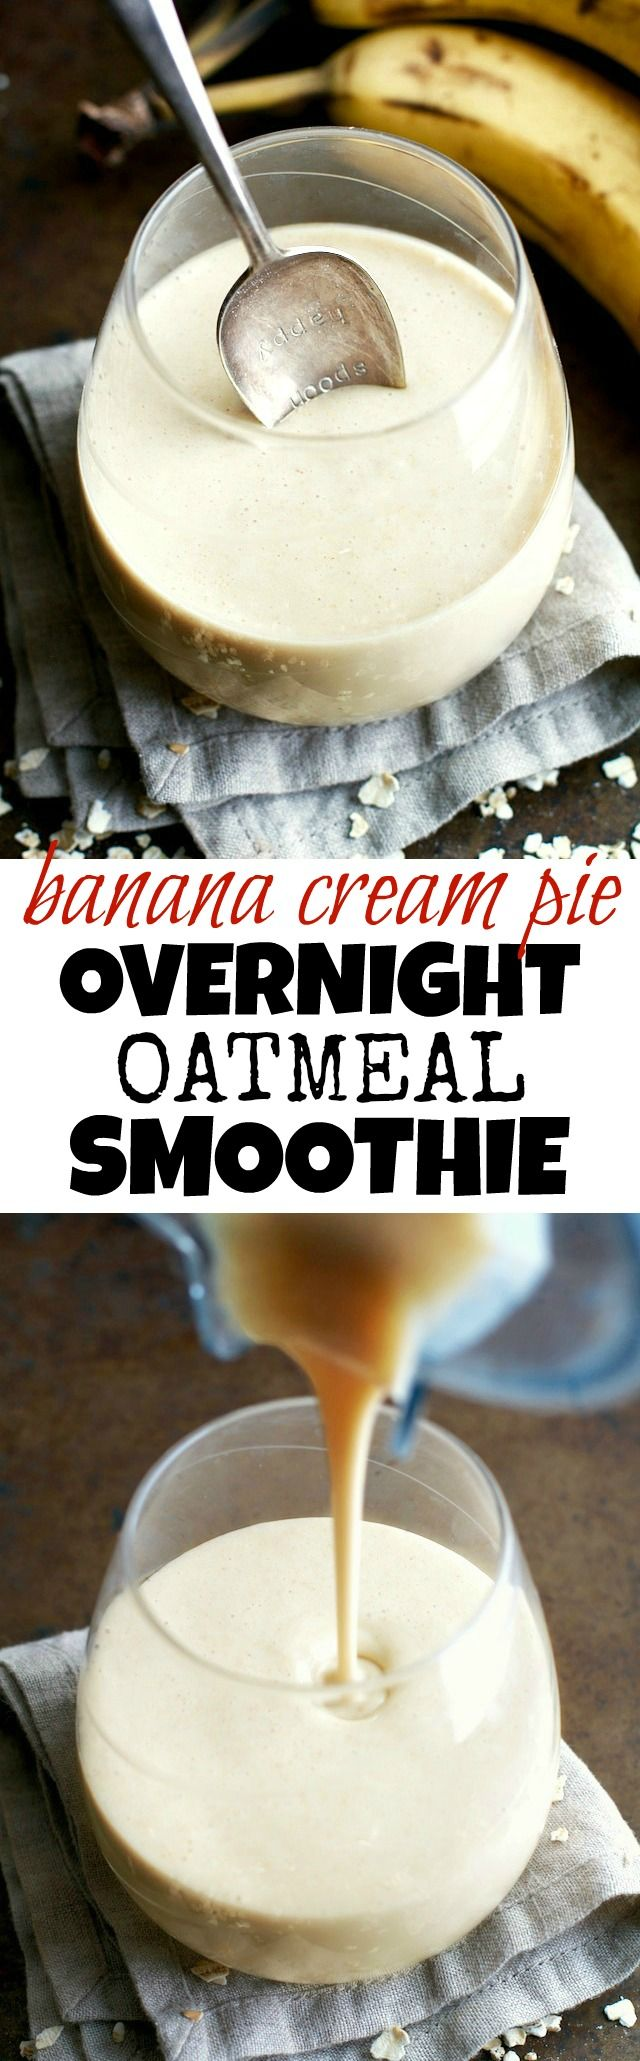 You've never had oatmeal like this before! This thick and creamy Banana Cream Pie Overnight Oatmeal Smoothie combines that stick-to-your-ribs feeling of a bowl of oats with the silky smooth texture of a smoothie! |runningwithspoons.com #vegan #smoothie #healthy #snack